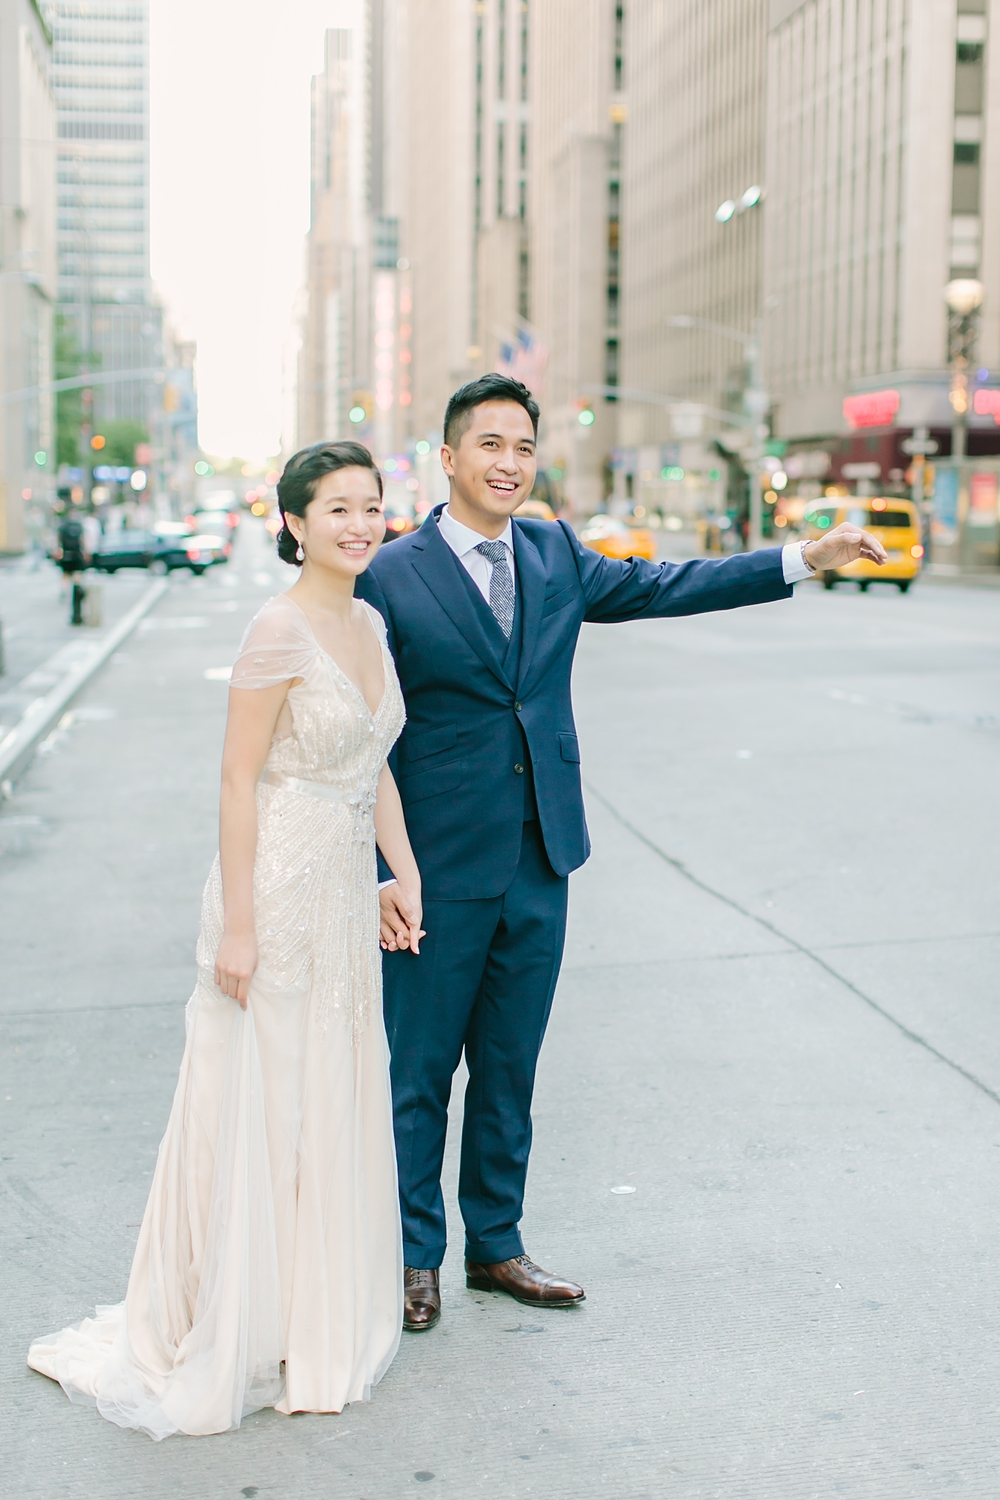 times_square_central_park_new_york_wedding_photos_0011.jpg